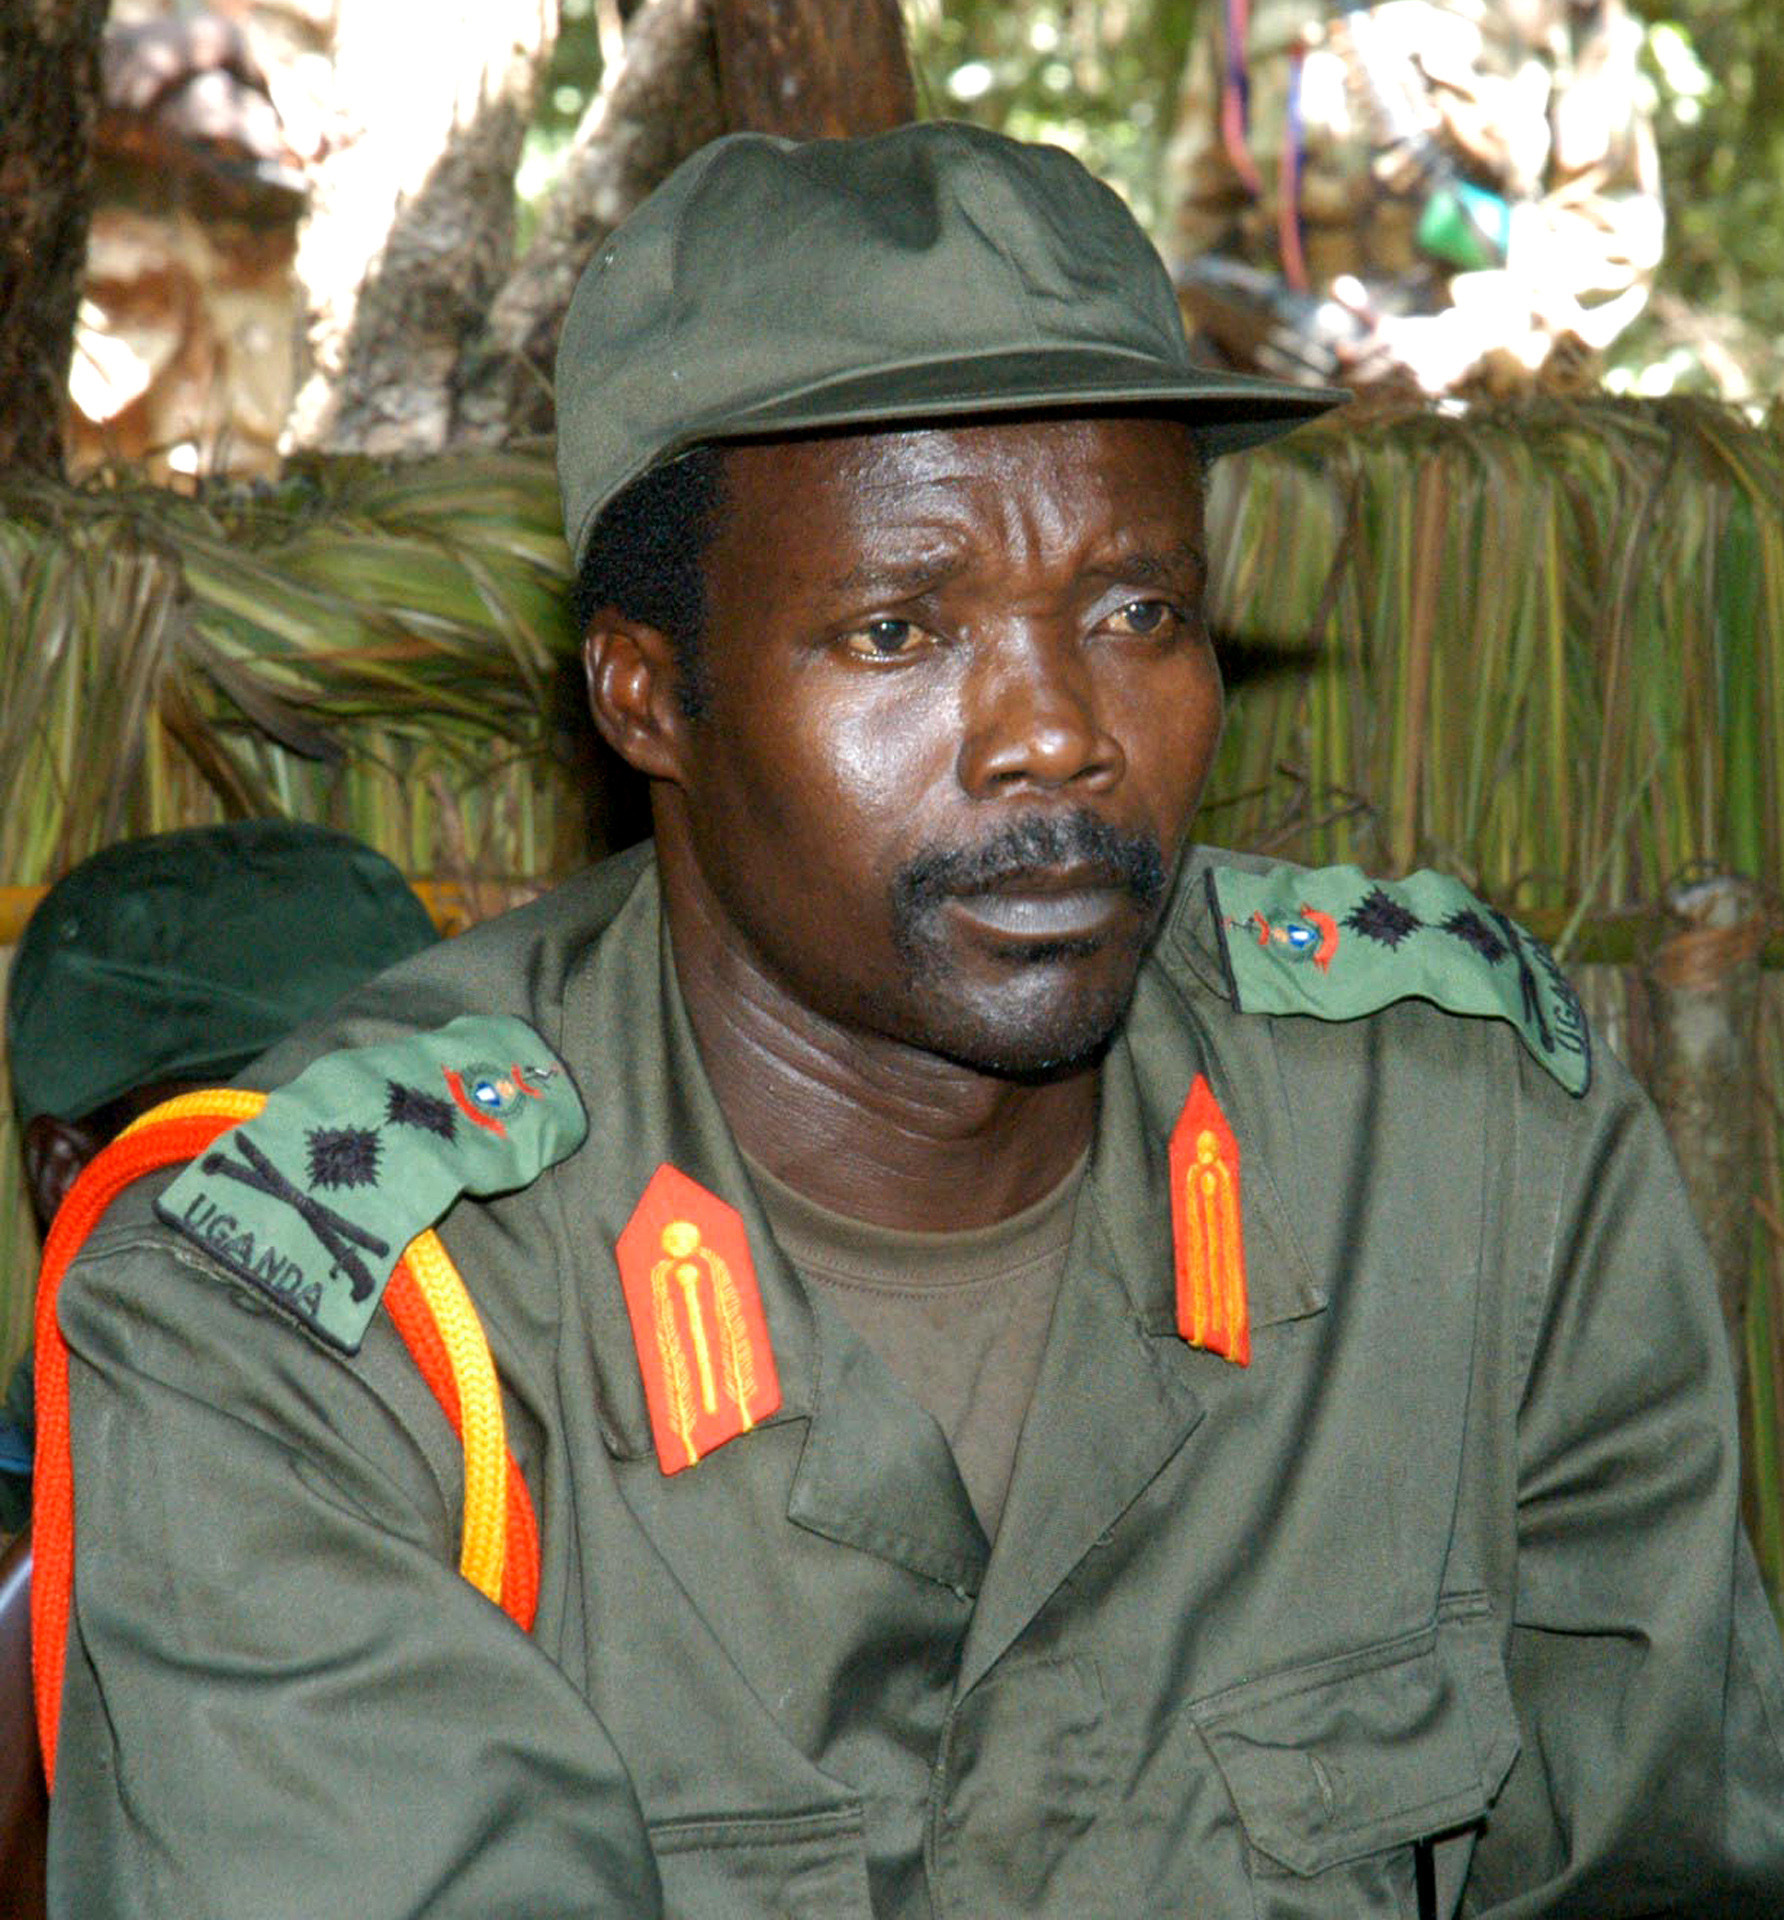 Tensions Rise as Rumors Spread: Is Kony in Darfur?